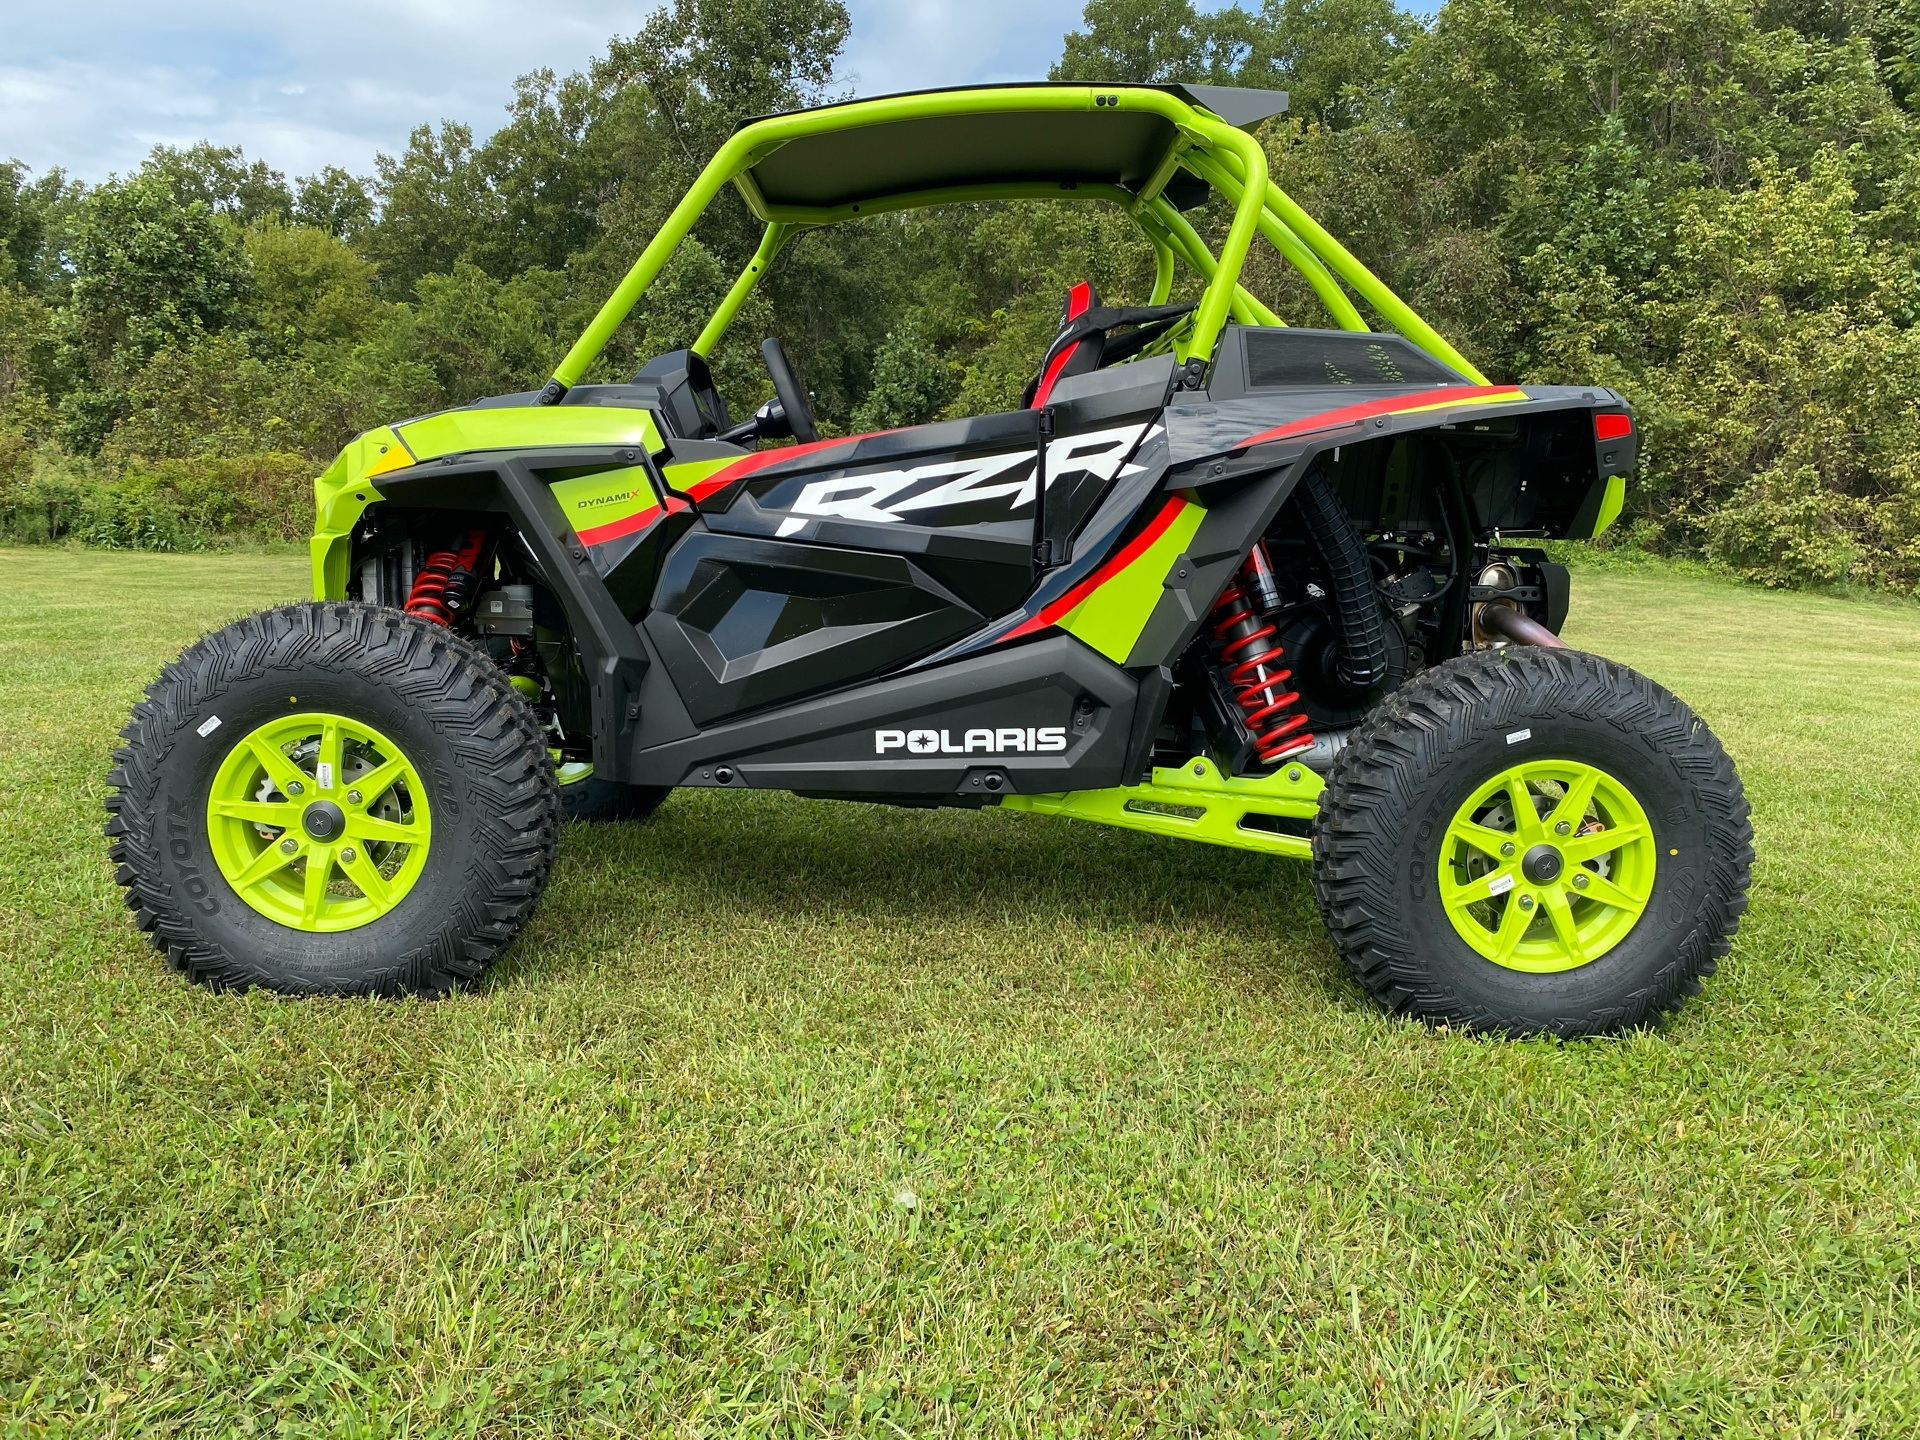 2021 Polaris RZR Turbo S Lifted Lime LE in Statesville, North Carolina - Photo 13